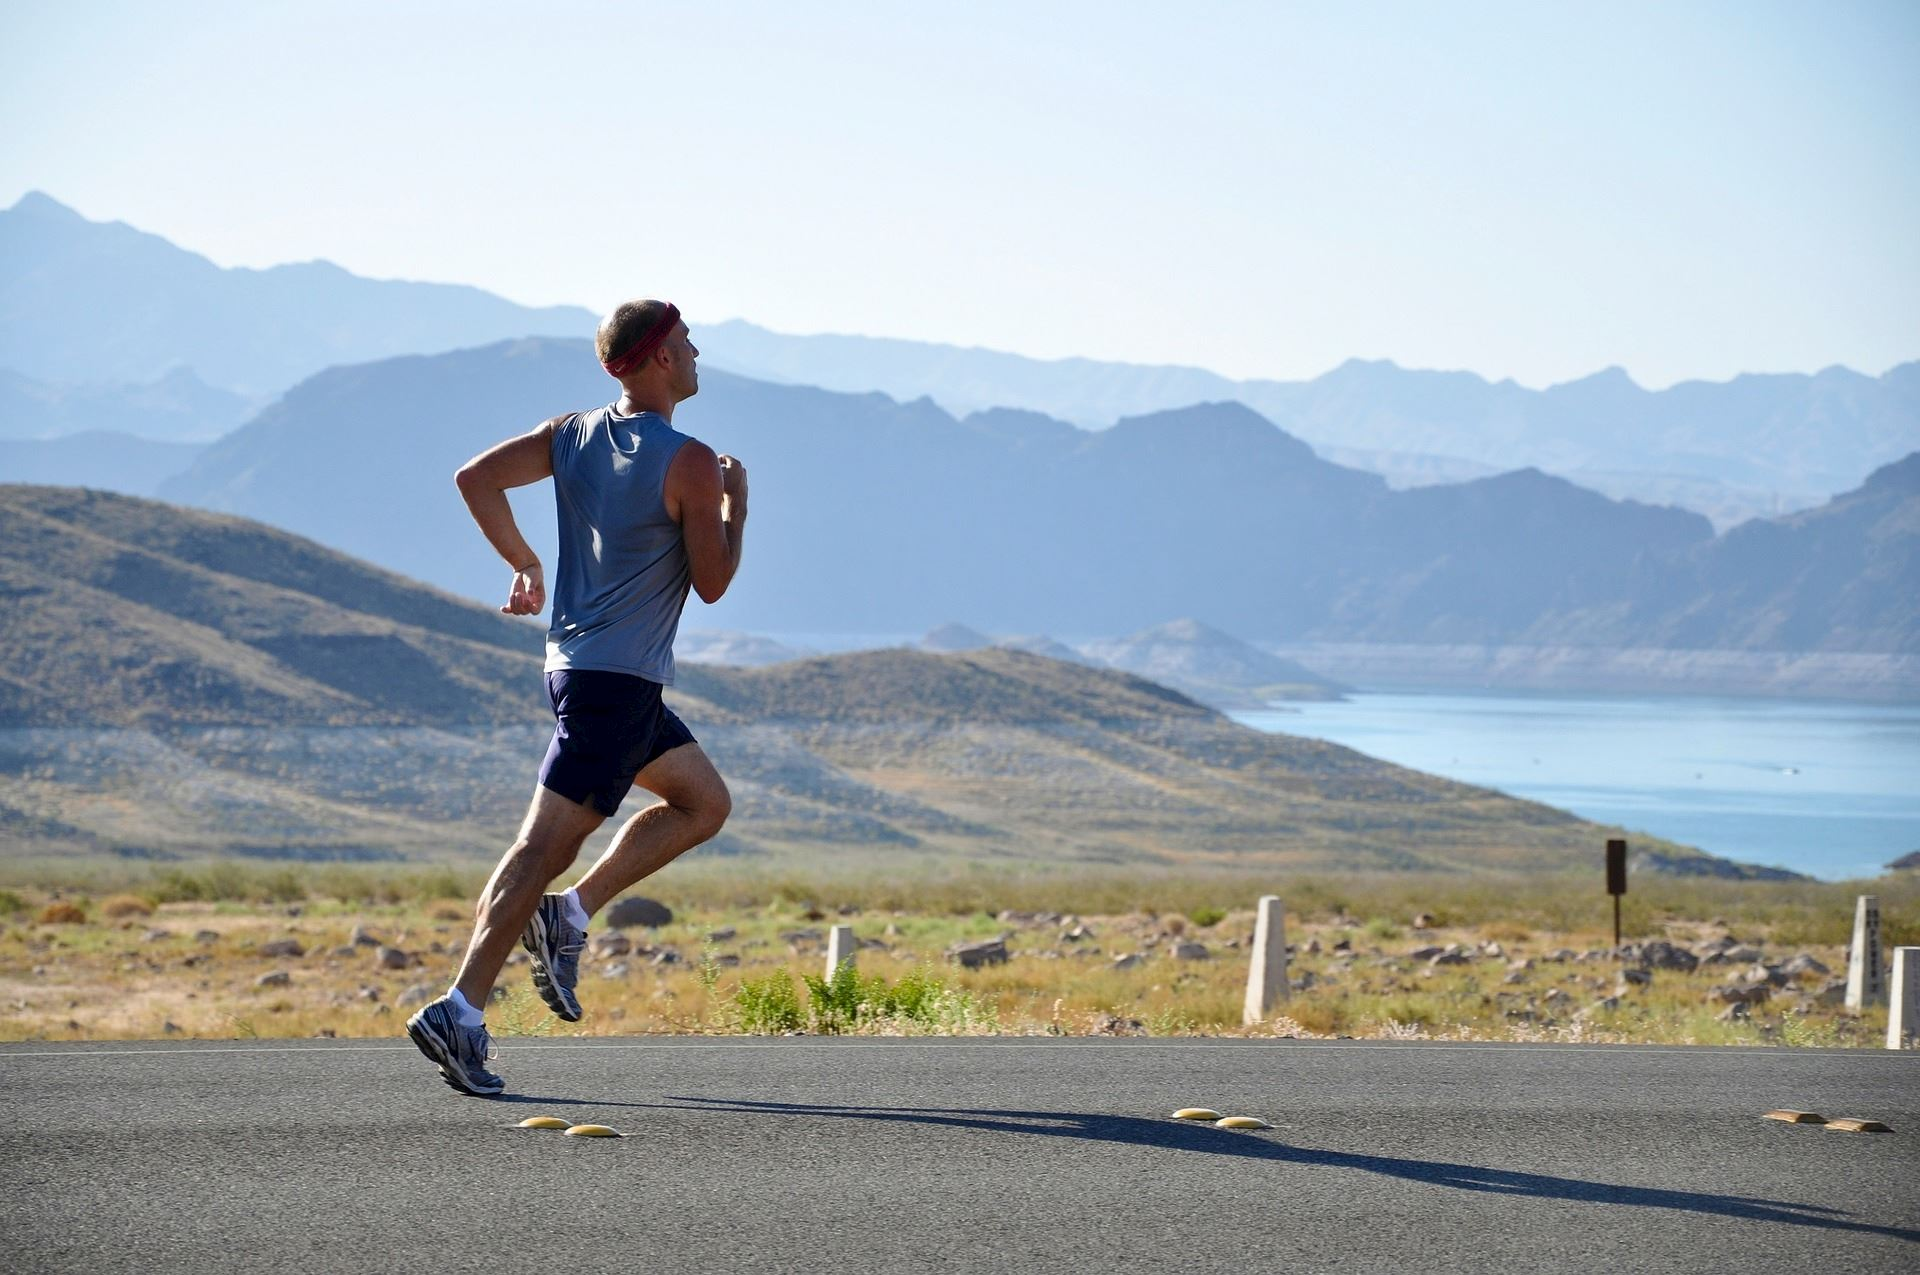 11 Things to Improve Your Endurance When Running